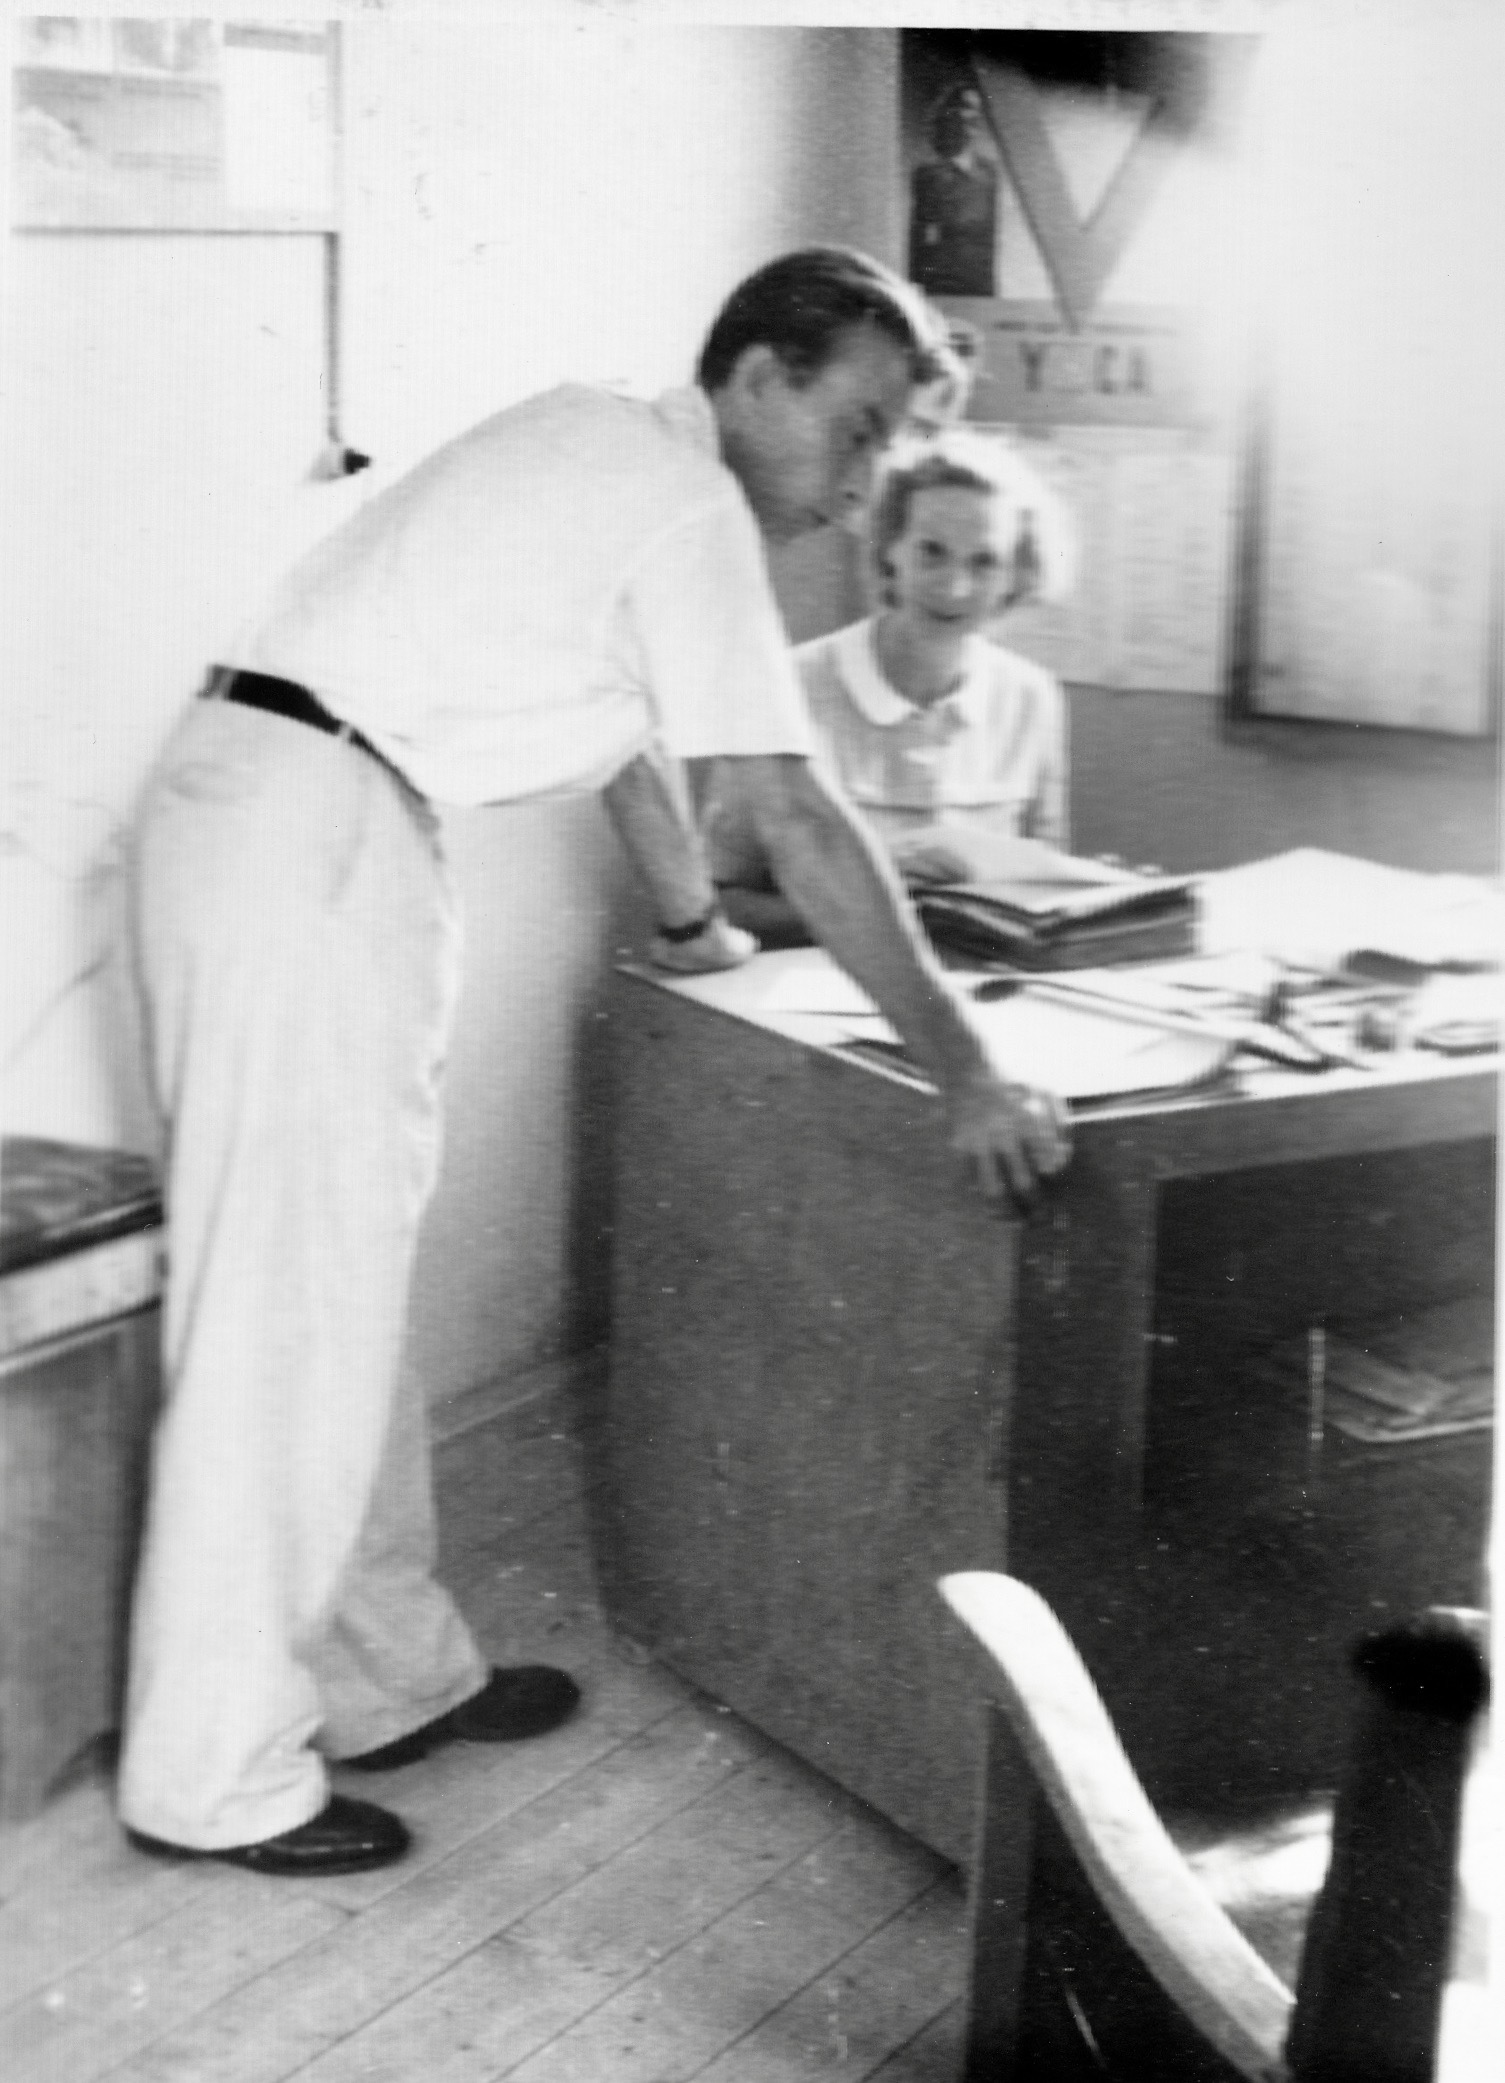 San Sabba, Clare McMurray with Mr Peckovsky, Clothing Manager 1950-51